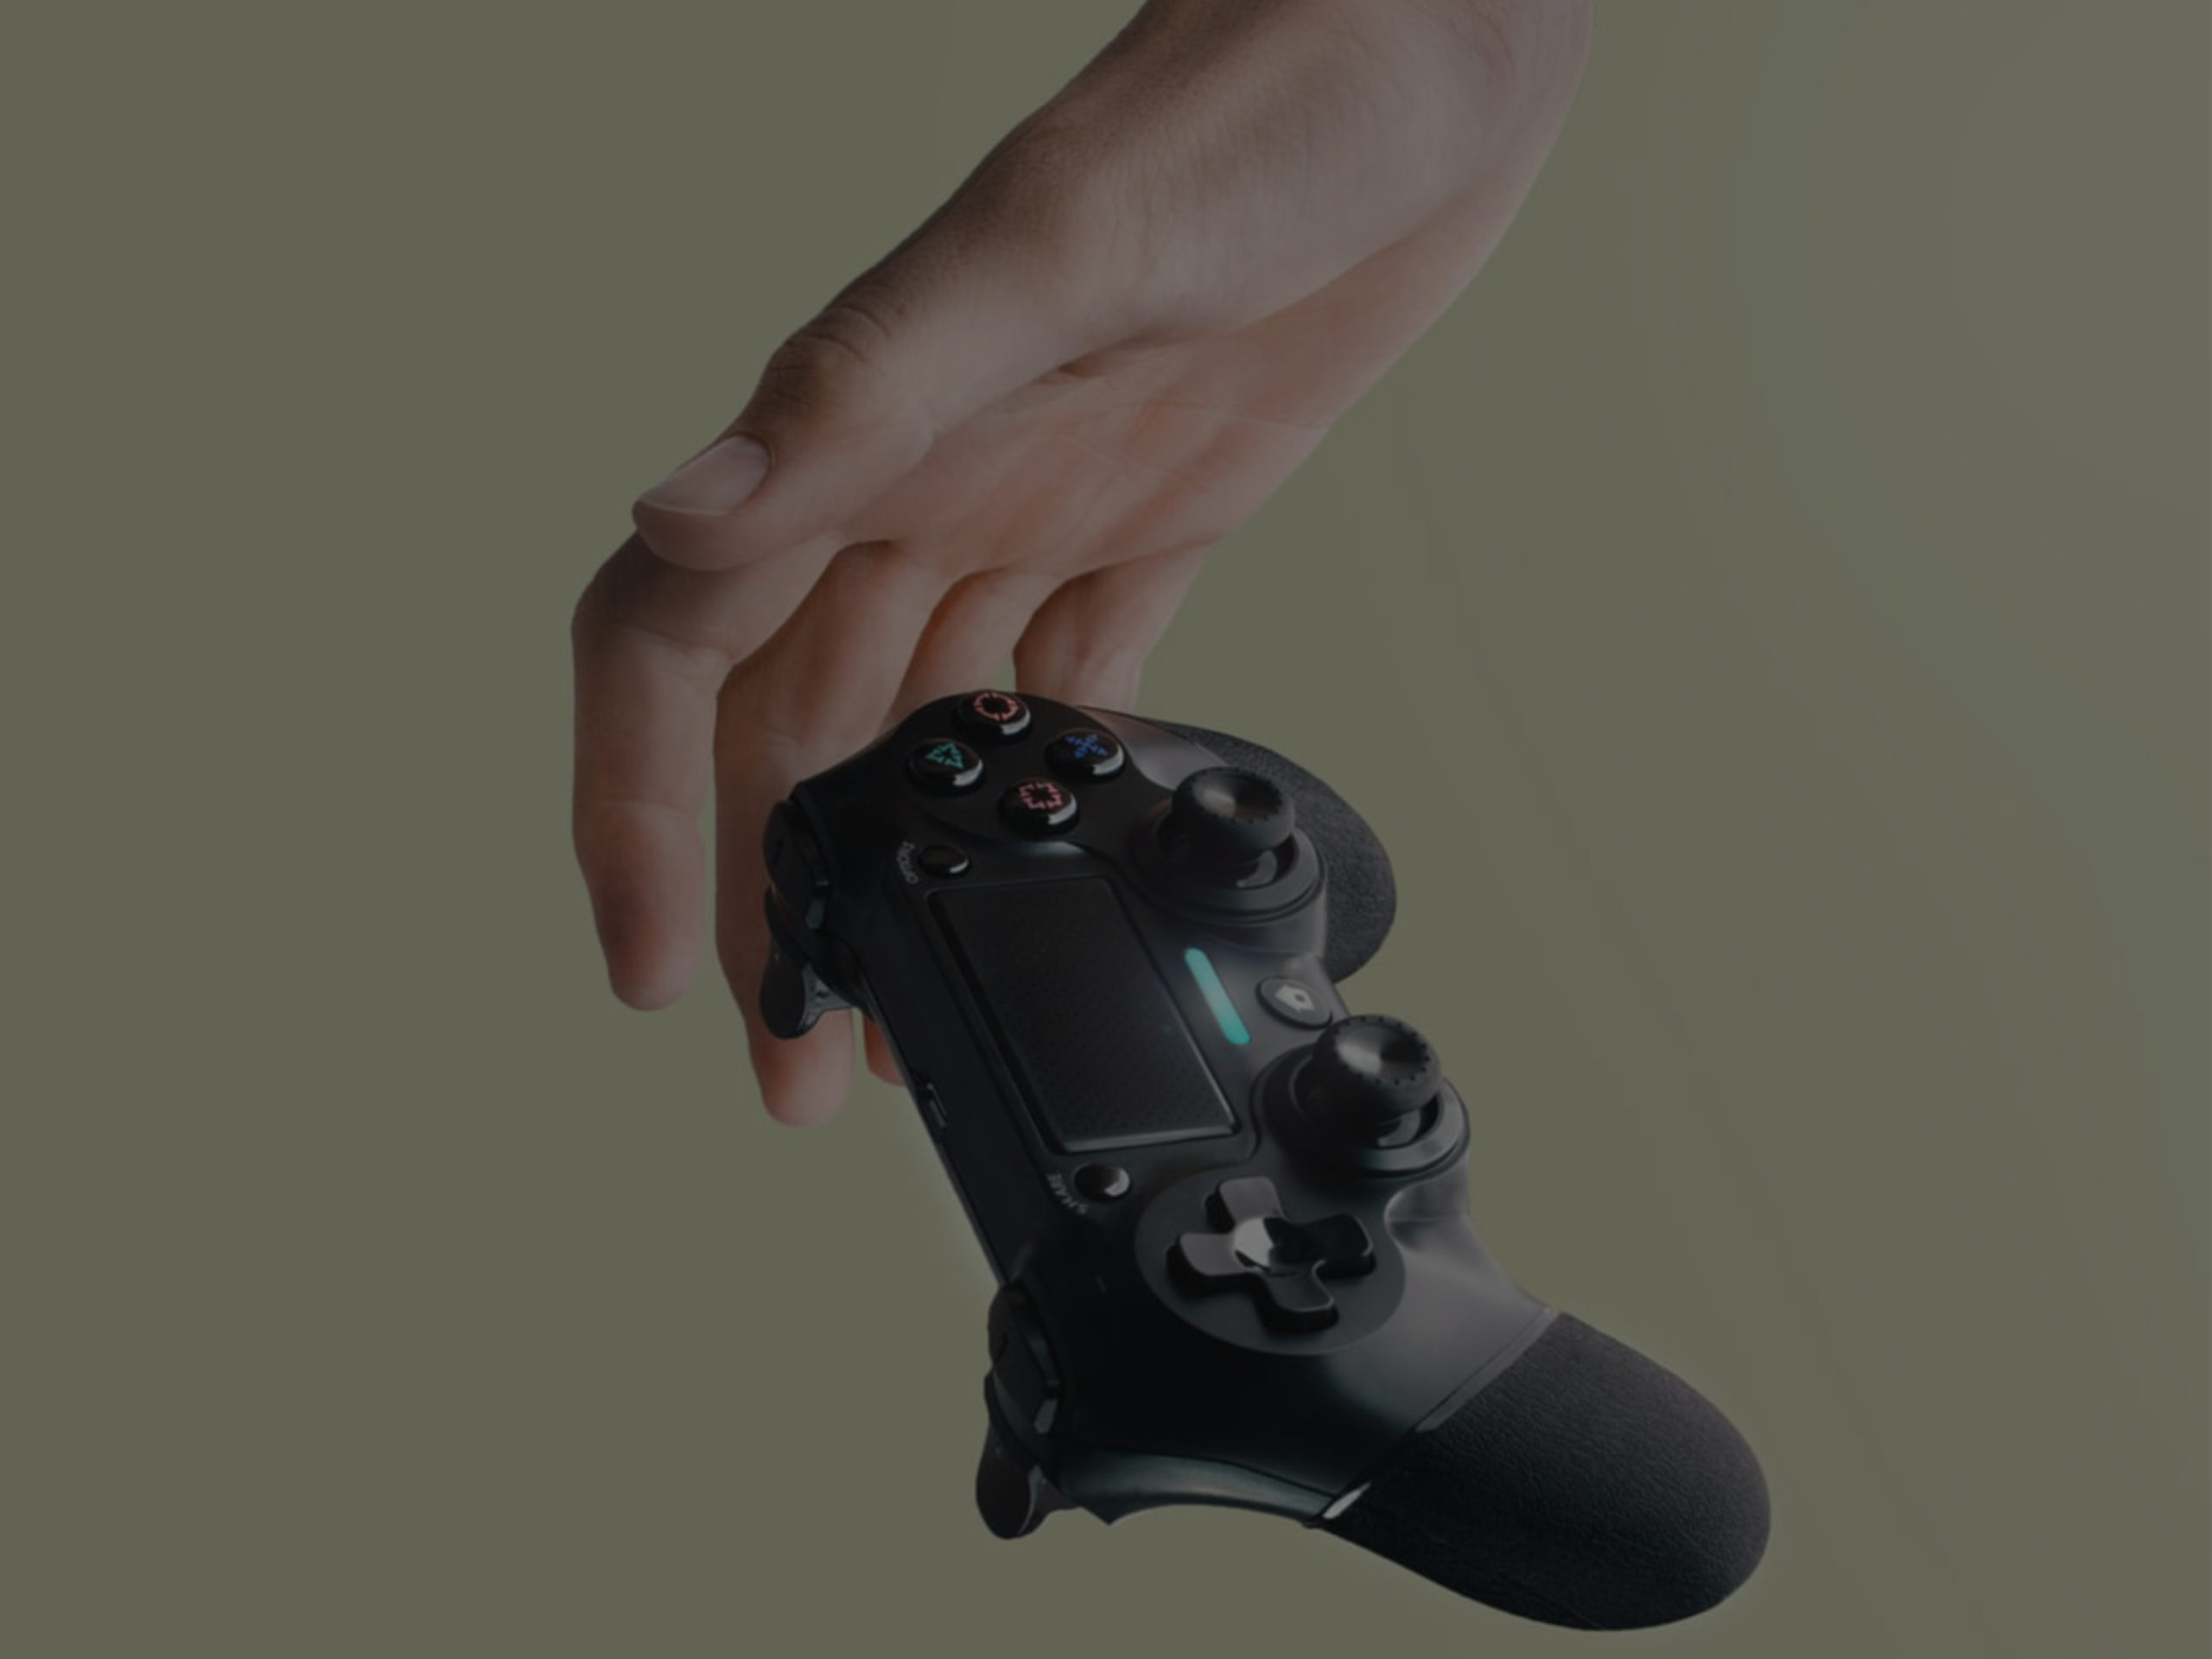 """At the very beginning of last year, the World Health Organisation (WHO) published the latest version of the International Classification of Diseases (ICD -11). The revised 11th edition saw the inclusion of a condition called """"Gaming Disorder"""". Up until then, """"Gaming Disorder"""" had only been listed as a """"condition for further study"""" within the 2013 […]"""